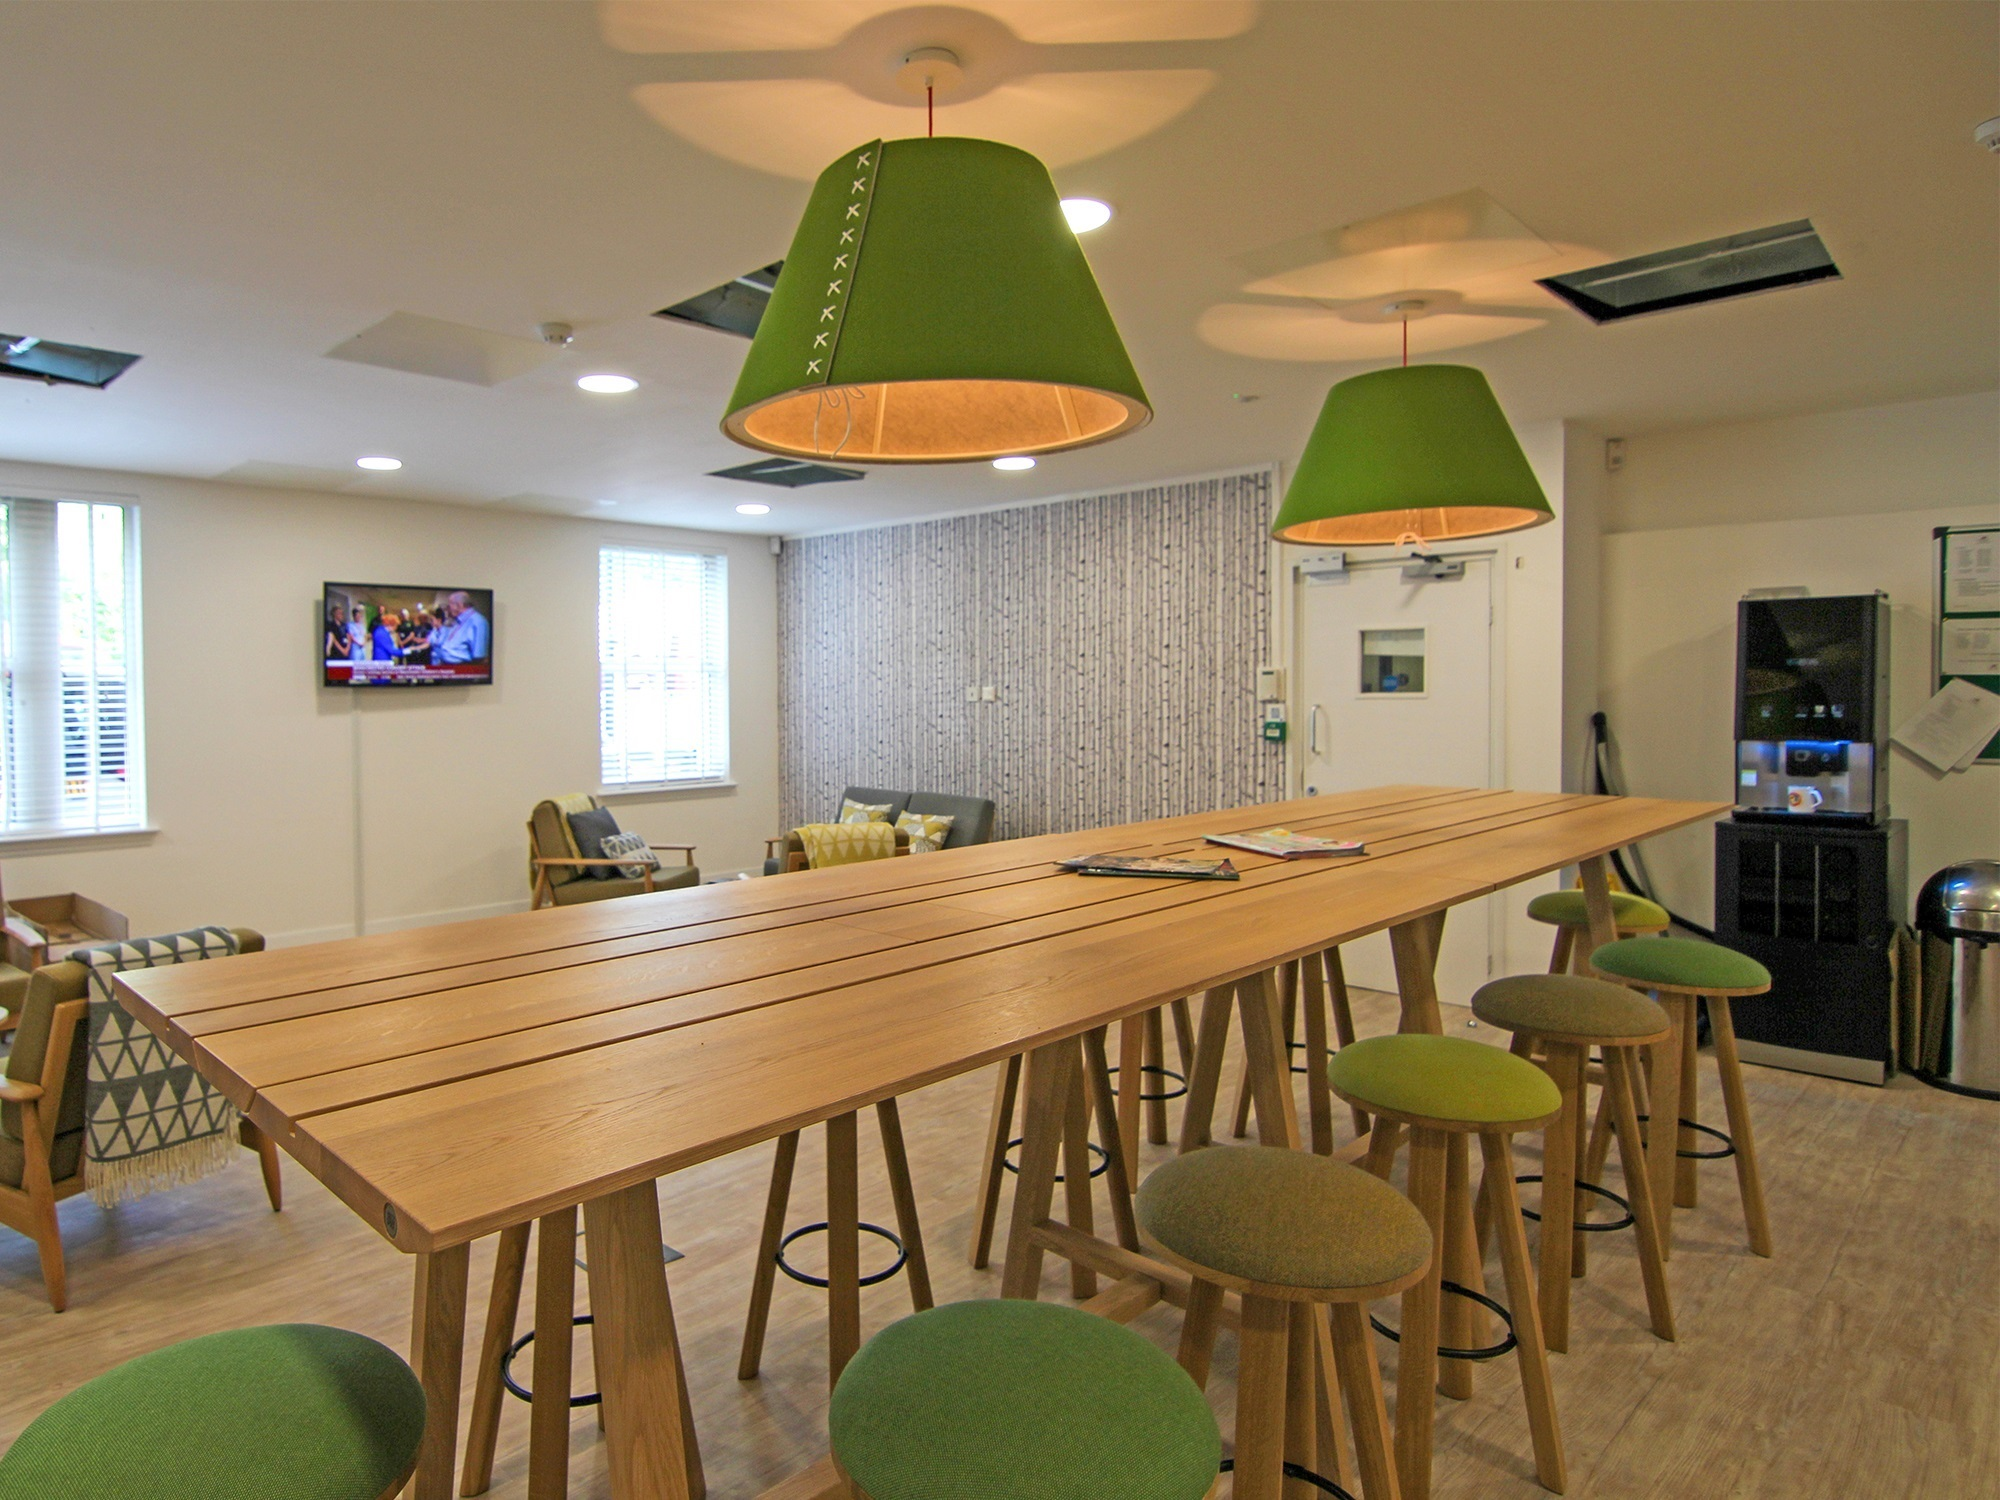 communal kitchen with green stools and lampshades